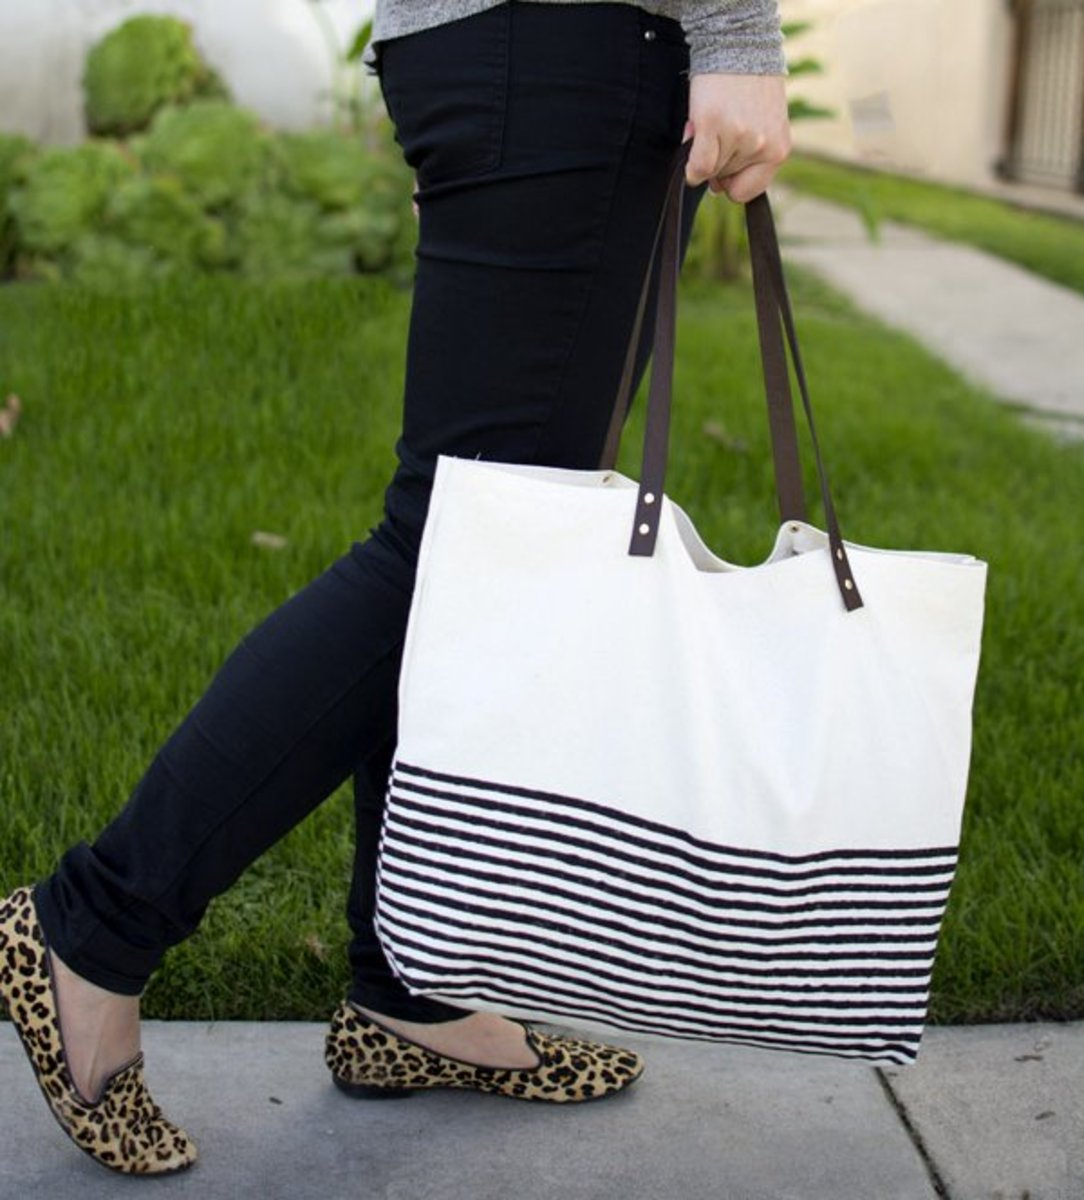 This trendy tote can be made by anyone, because it doesn't require sewing.